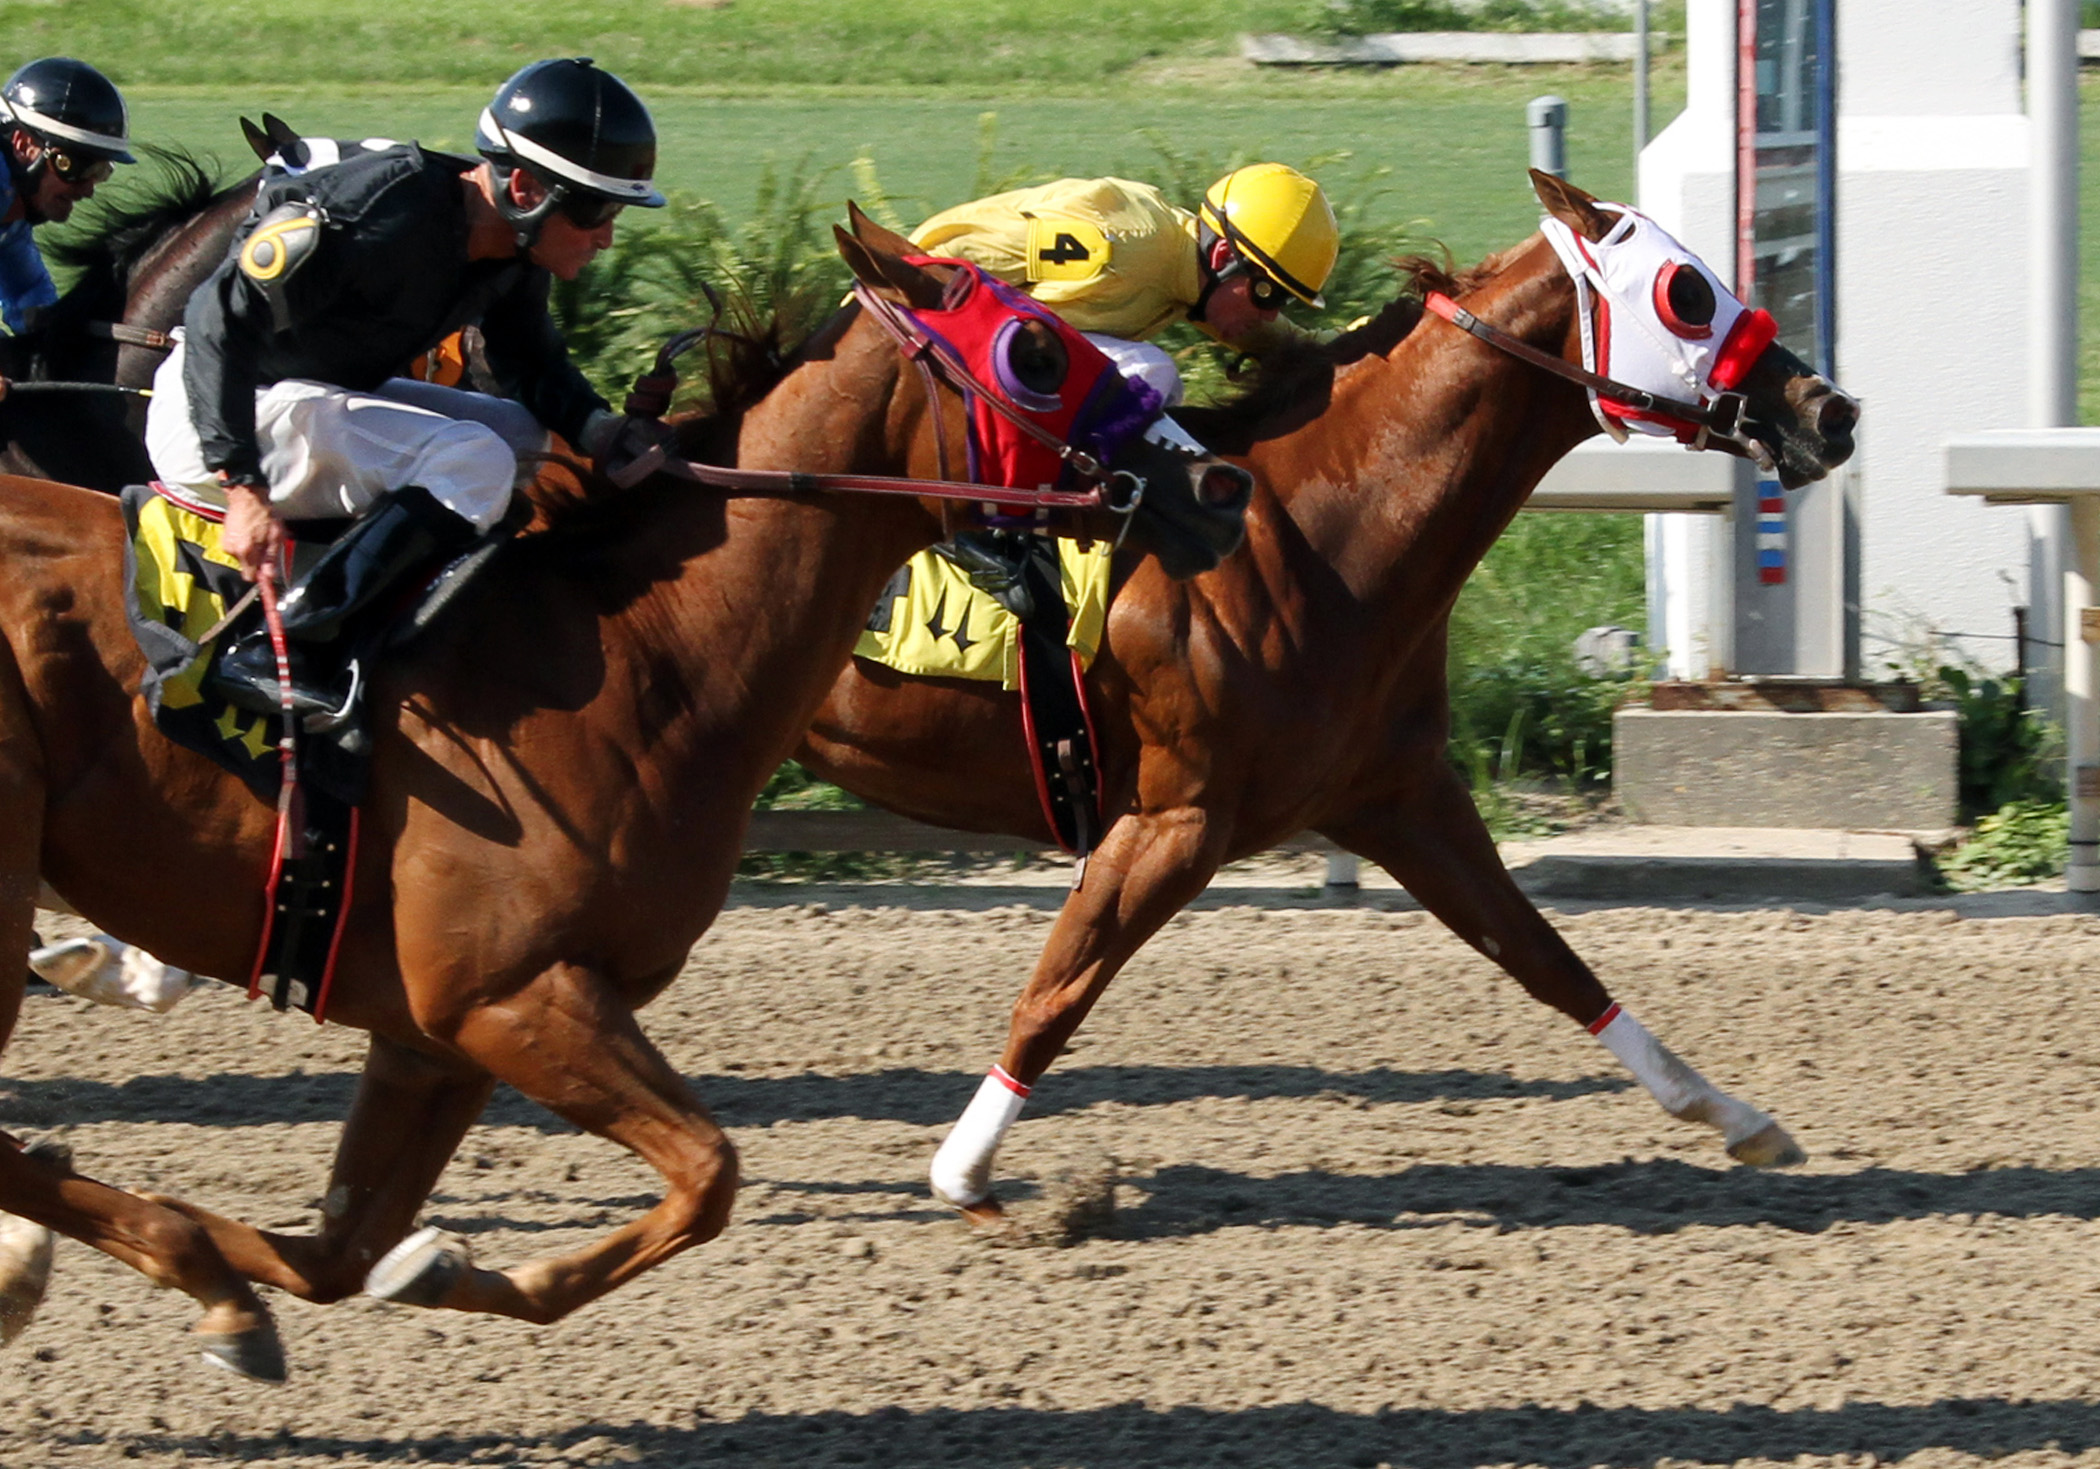 In this photo provided by Louisiana Downs, Brightlites Bigcity, right, with Jesse Chavis aboard, holds off Deadly Swingin Jess (6), front left, with John Hamilton up, to win the LQHBA Invitational Stakes horse race at Fair Grounds in New Orleans, Thursday, Sept. 12, 2013